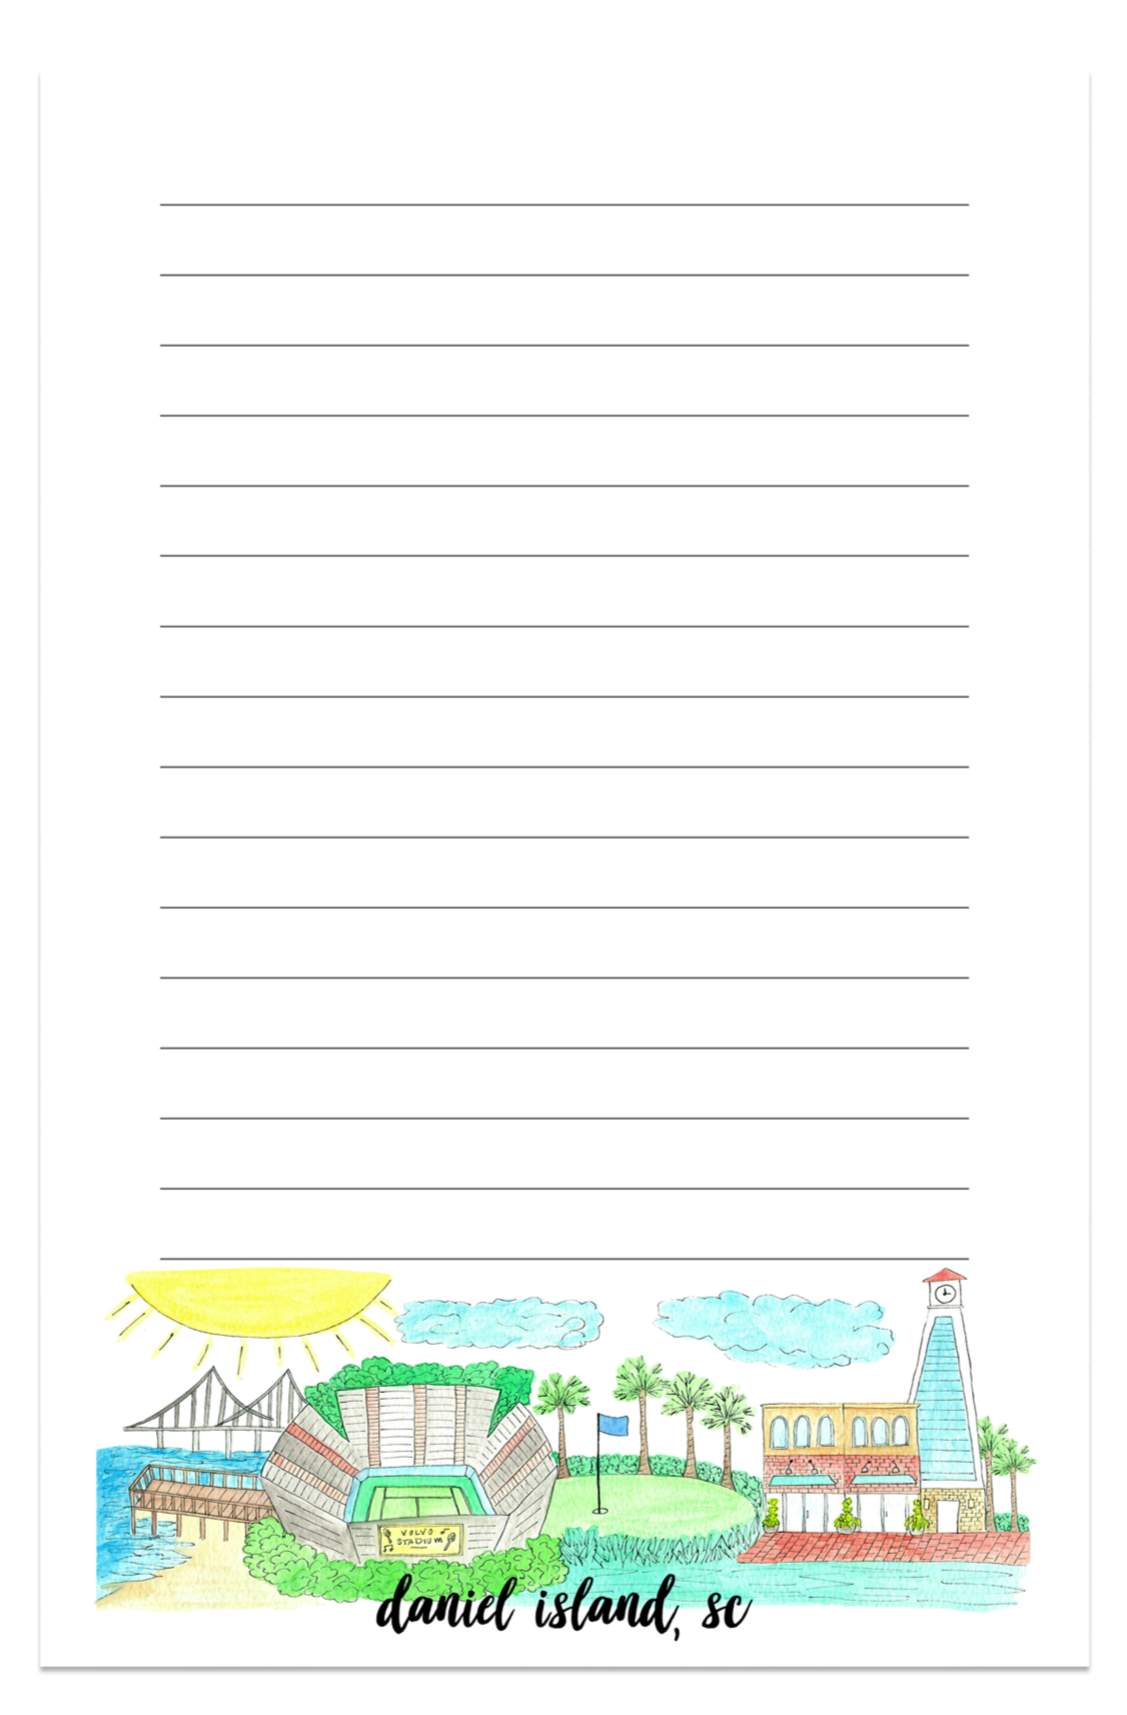 Daniel Island, SC City Notepad